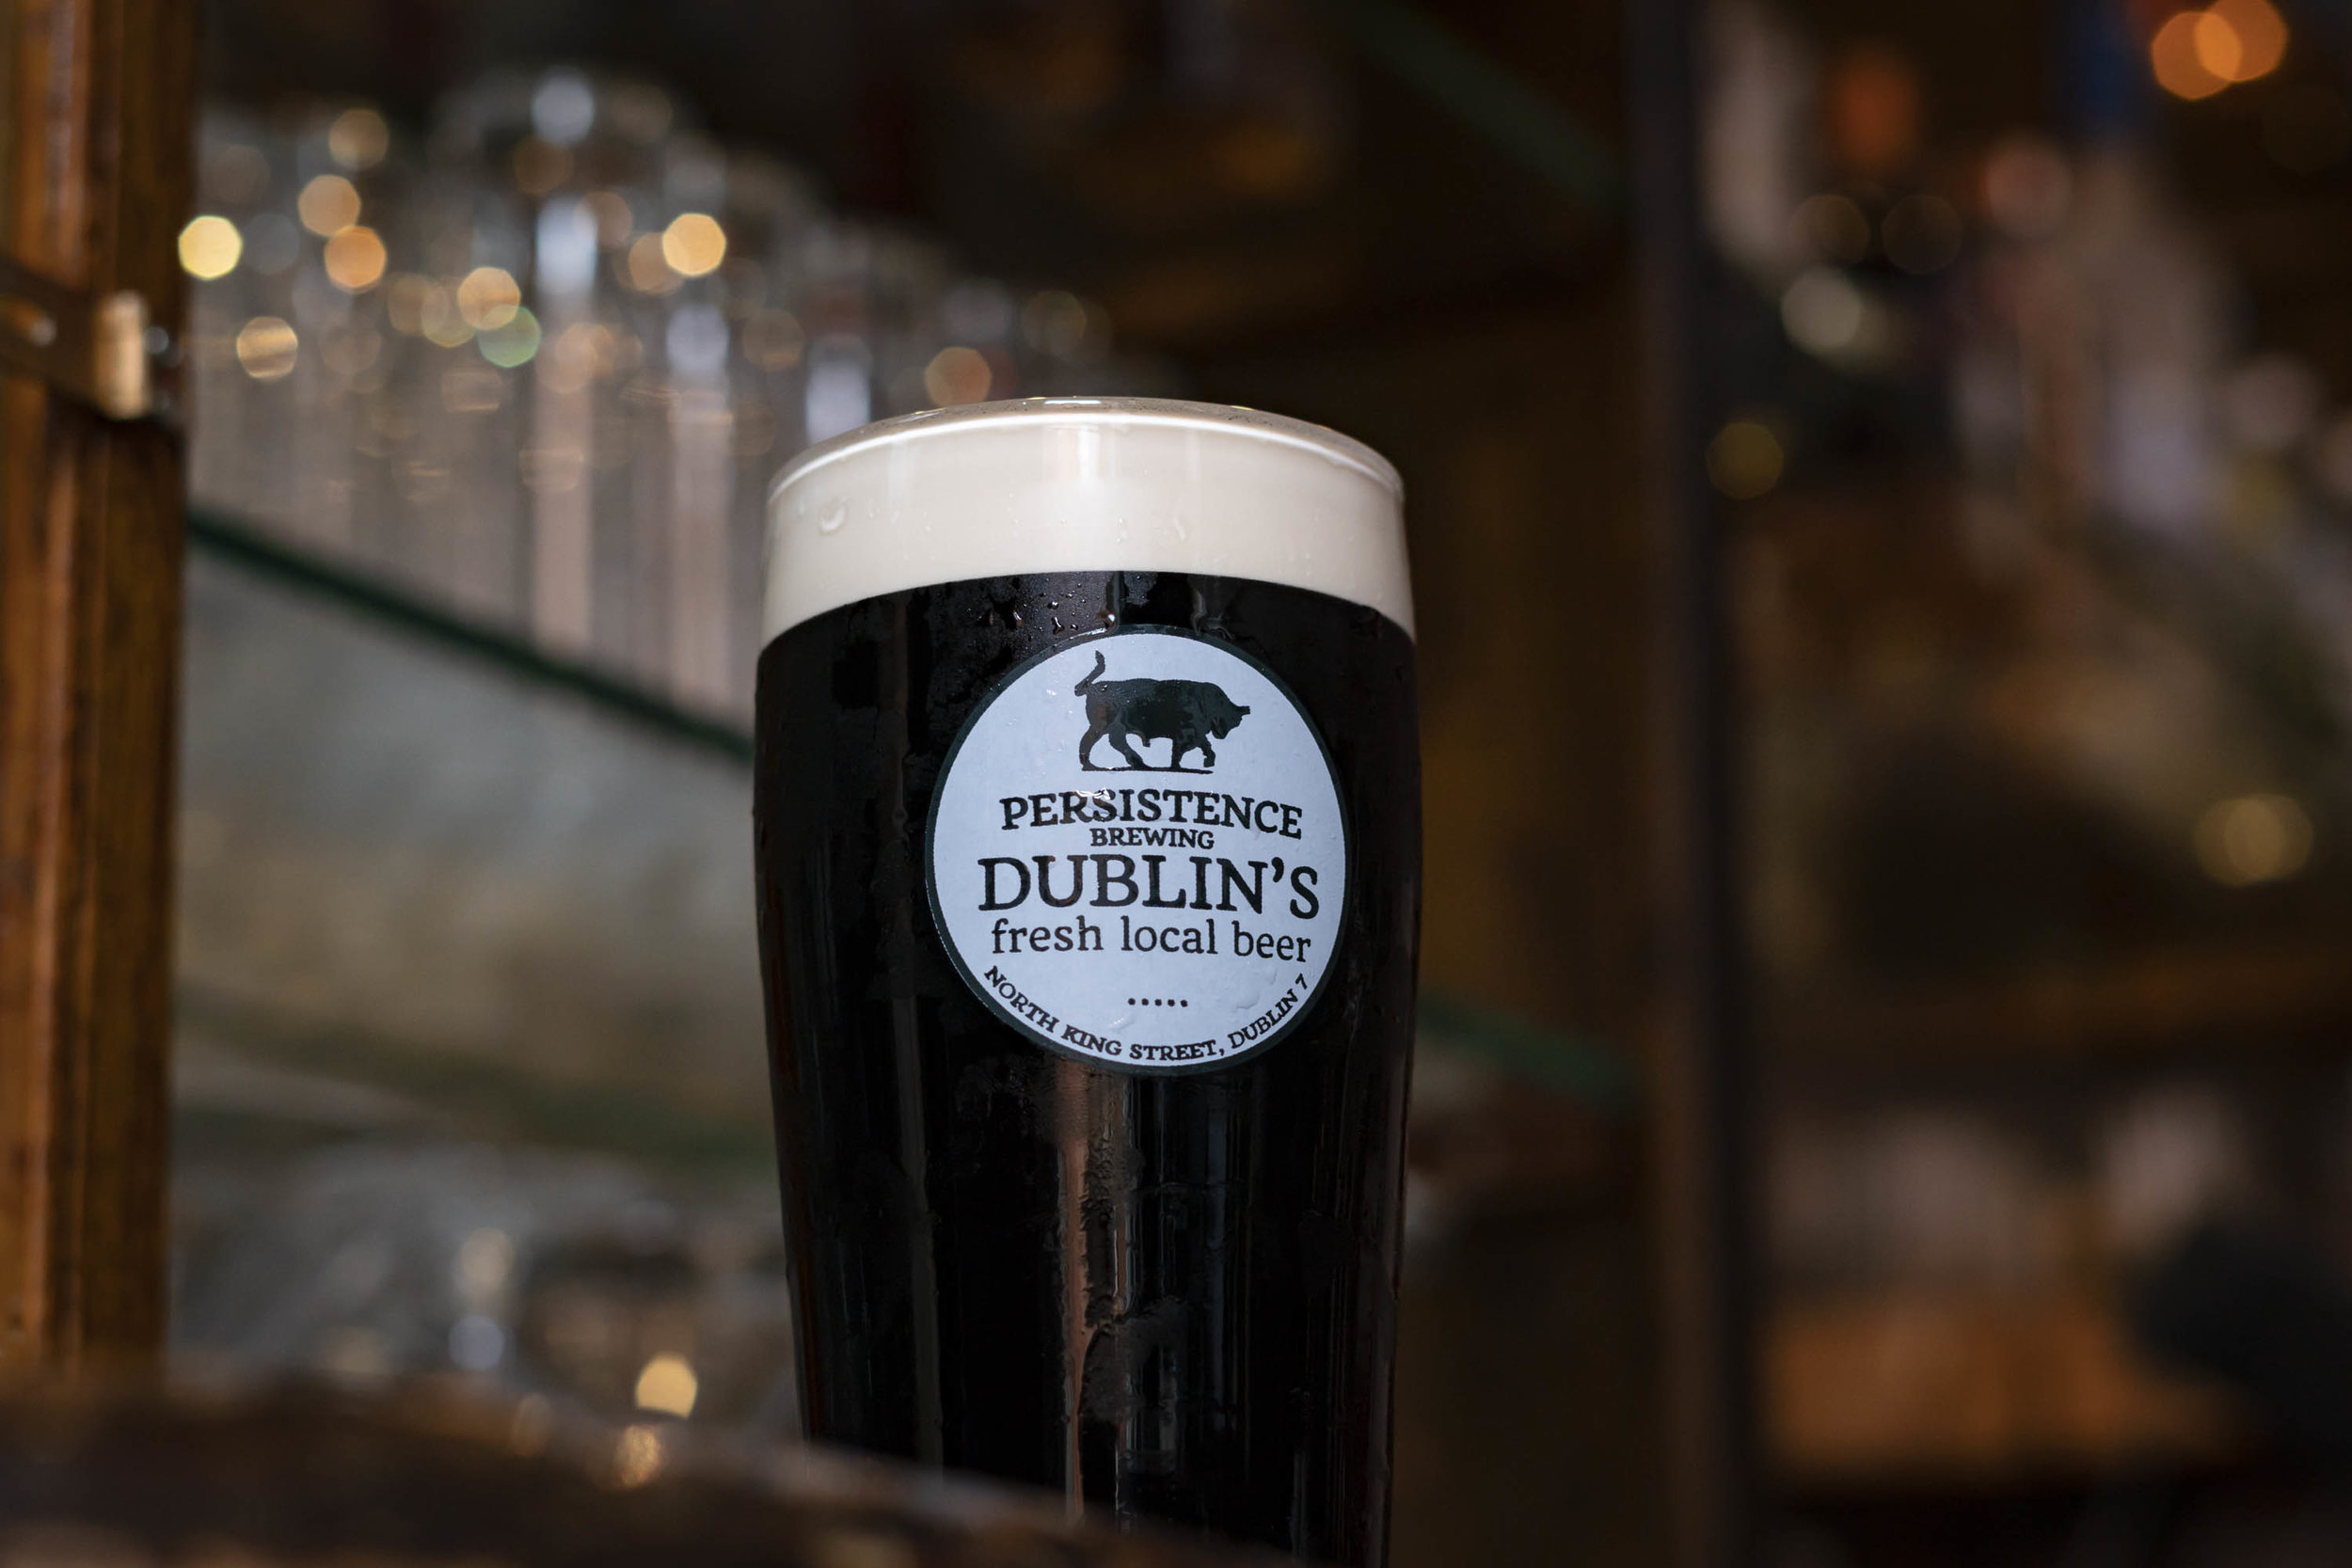 P45 Dublin Stout - abv. 4.5%The authentic taste of traditional Dublin stout. Only quality Irish barley used; roasted, rolled and malted. Brewed with East Kent Golding hops.At 40 IBUs P45 has a medium finish and the great flavour that our grandfathers enjoyed. Unfiltered and unpasteurised.